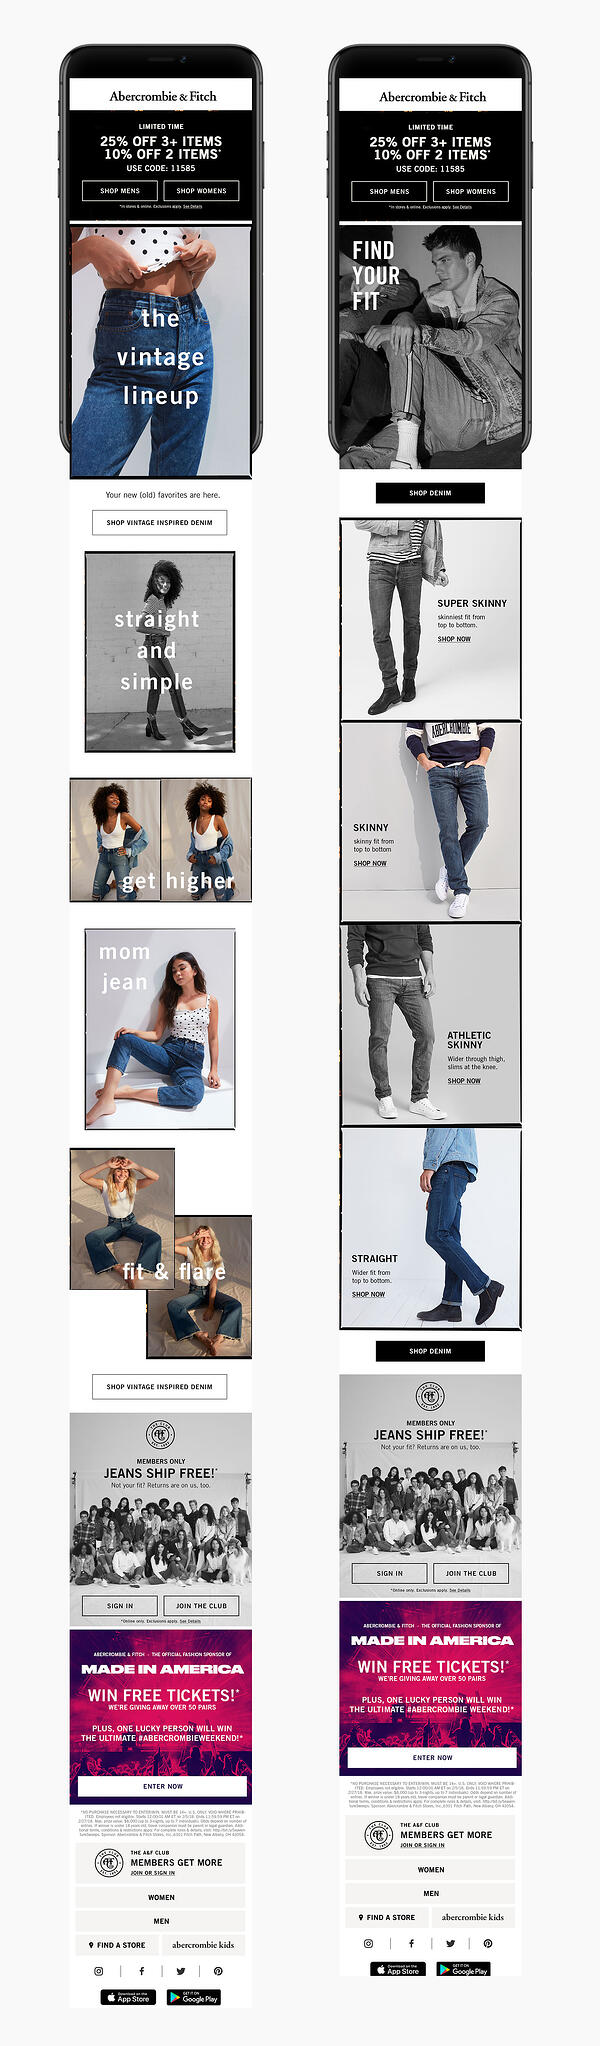 2 A&F customer segmentation example email gender